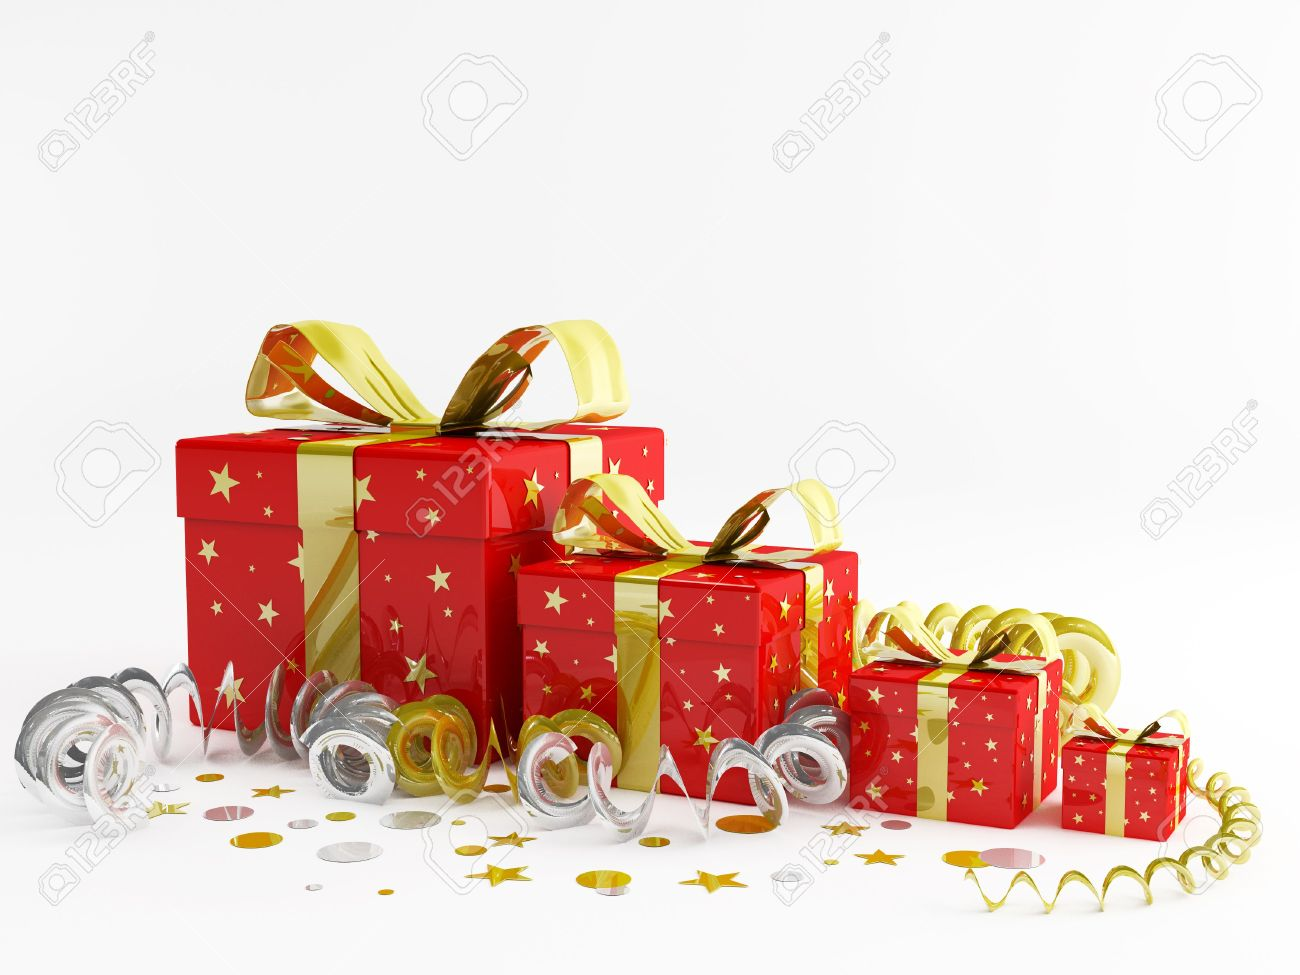 3d Render Illustration Of Decorations And Christmas Gifts Stock ...